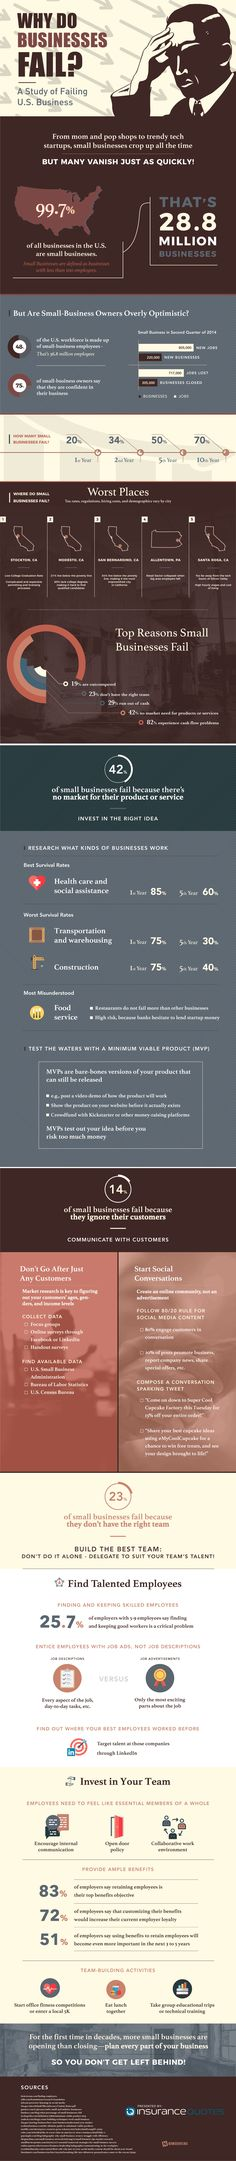 5 Reasons Why Businesses Fail - #Infographic